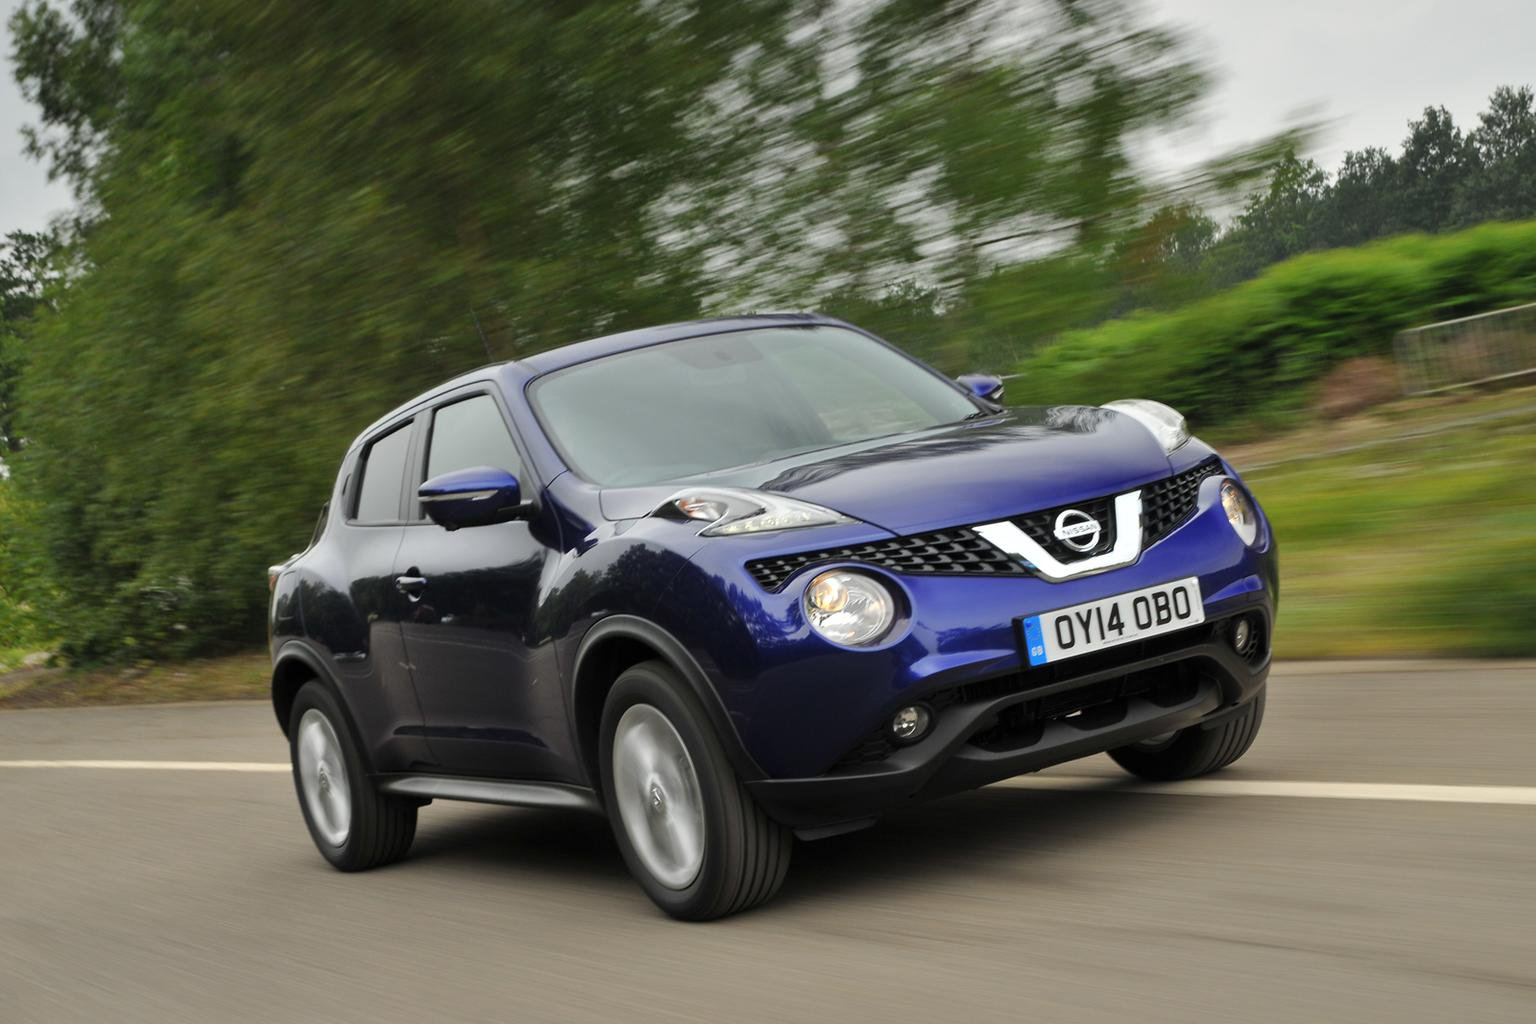 2014 Nissan Juke 1.2 DIG-T review